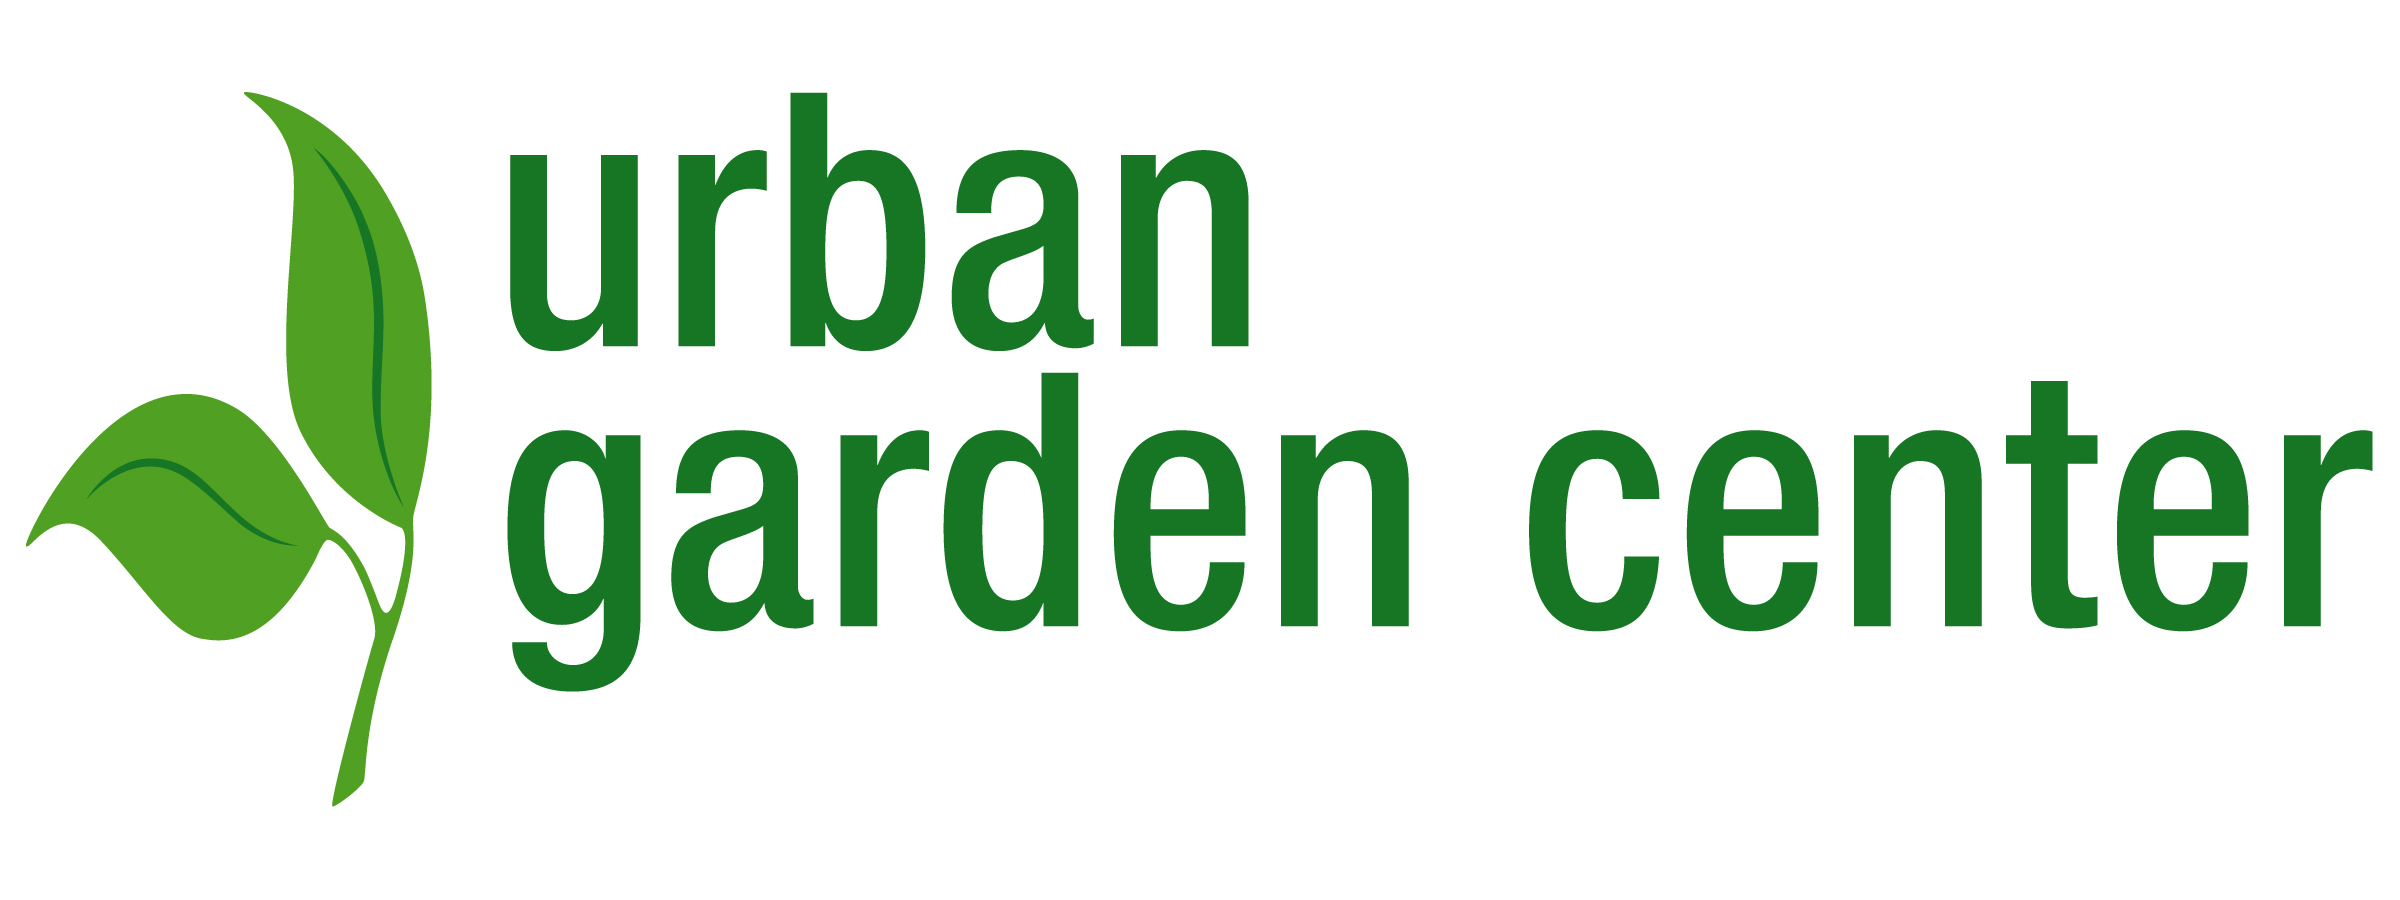 Urban Garden Center